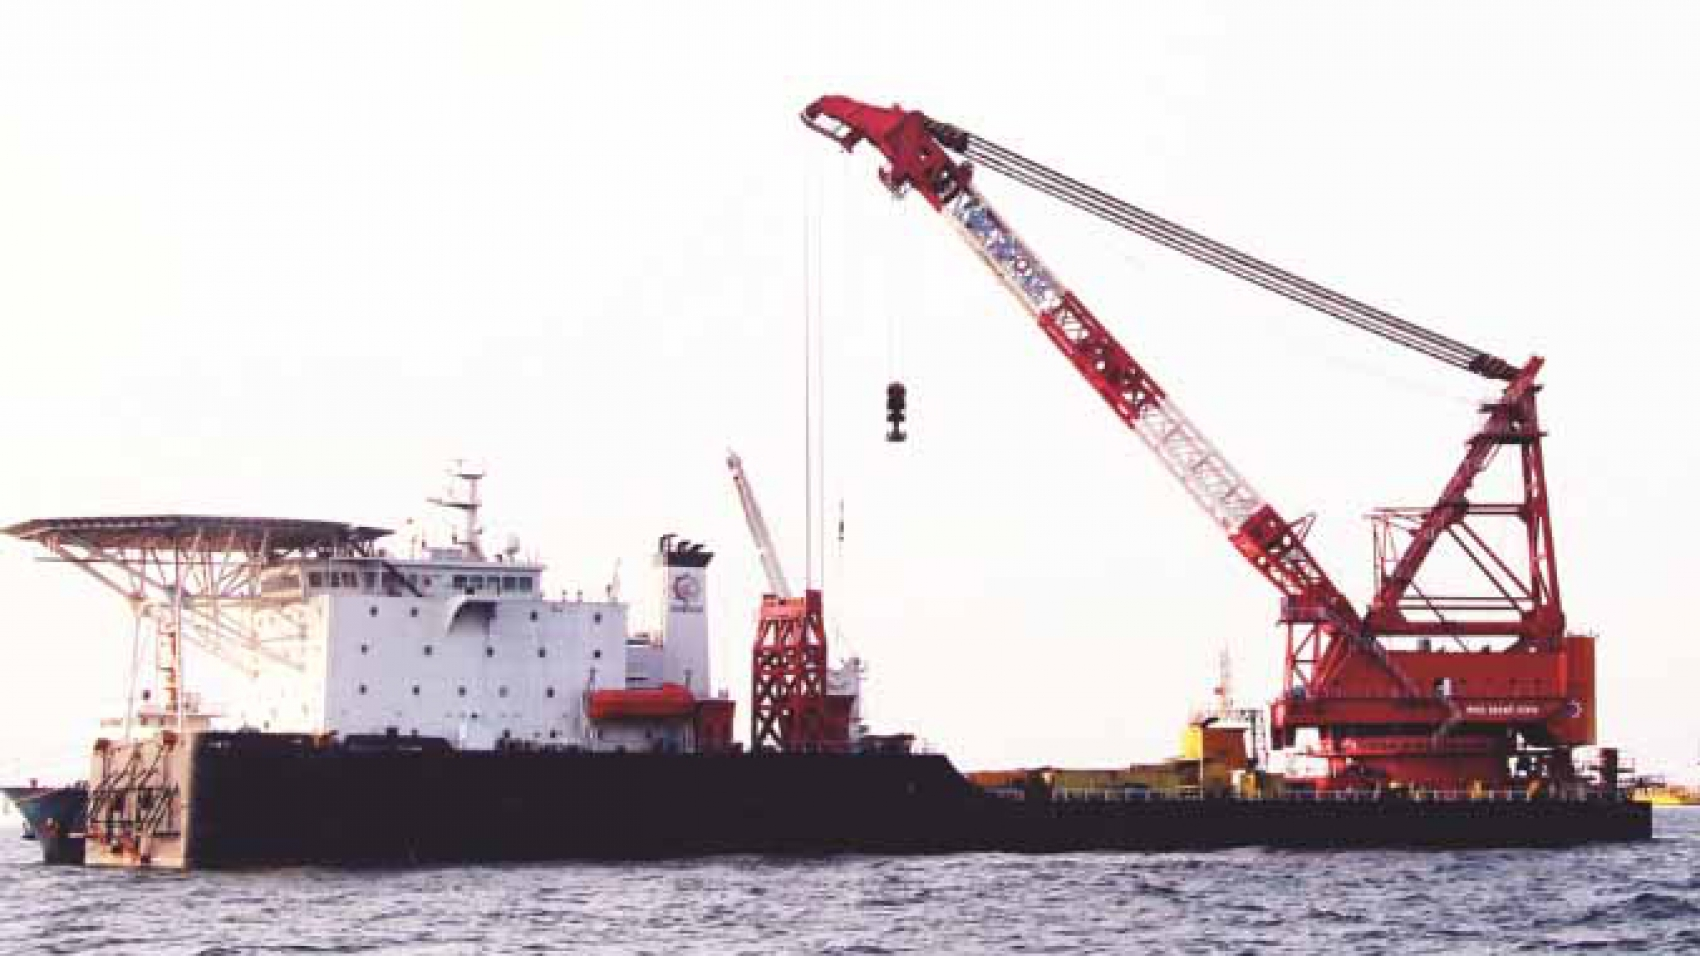 Derrick Pipelay Barge For Sale Ref-1231